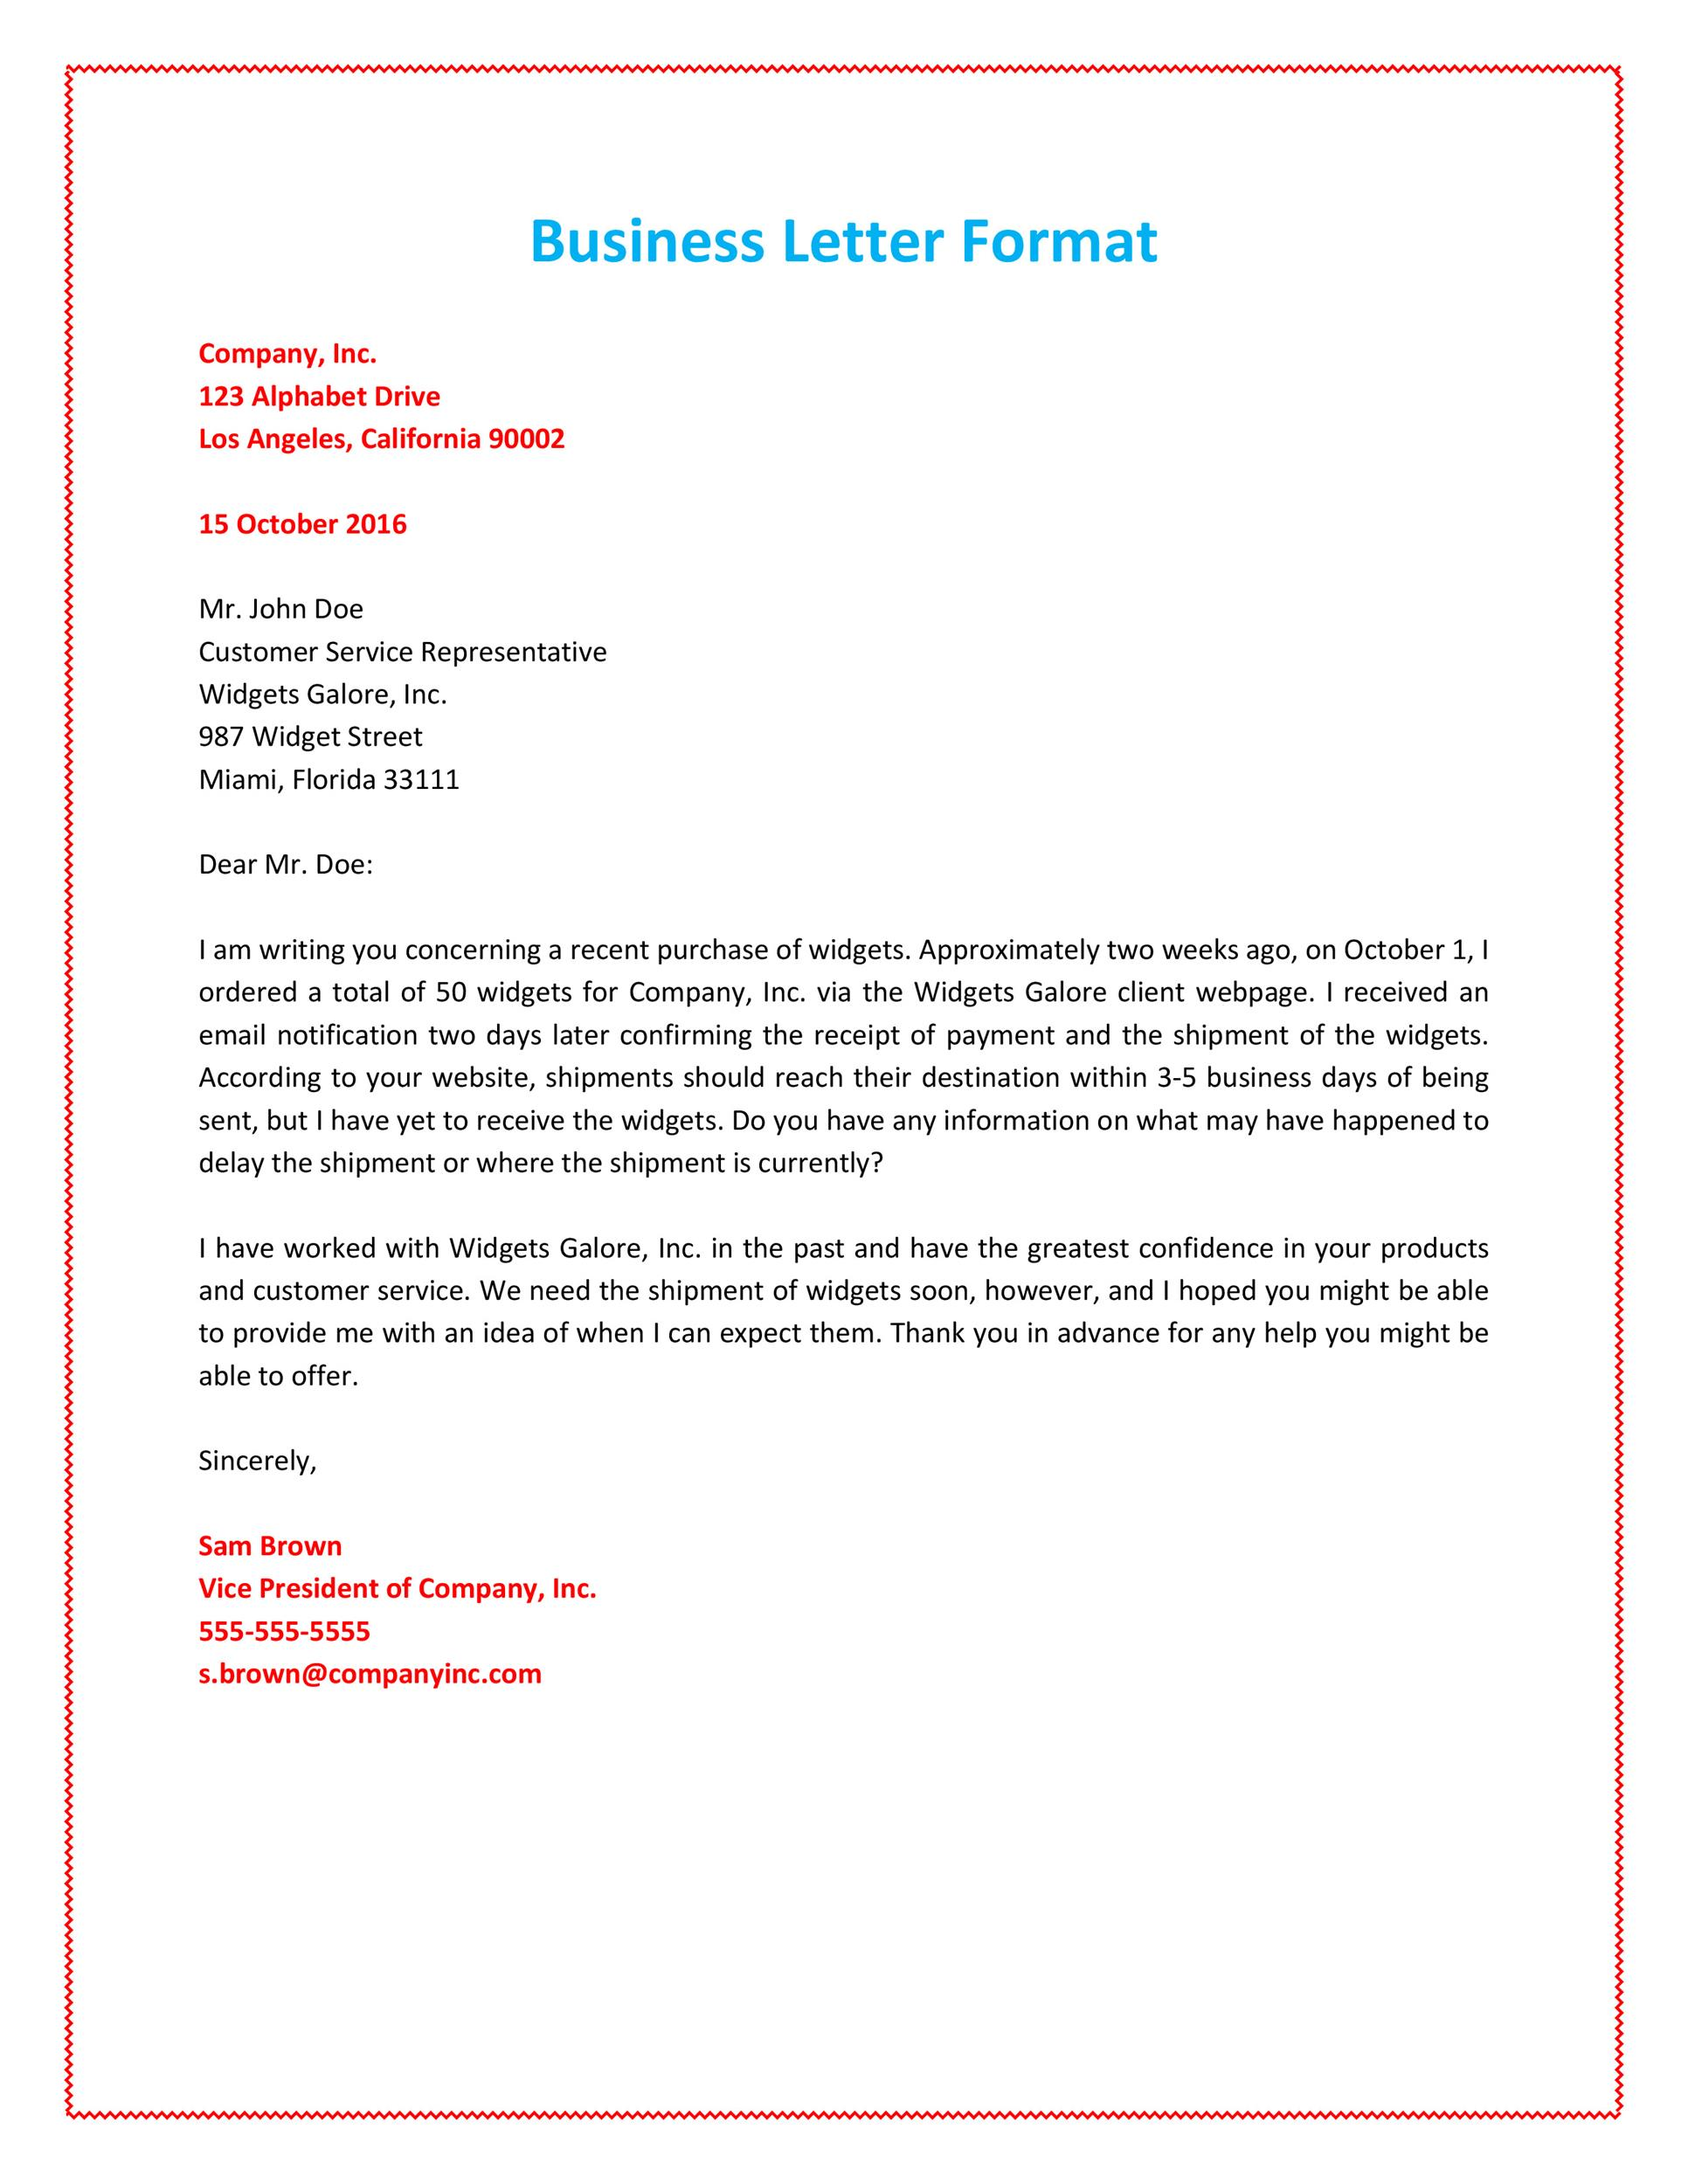 35 formal business letter format templates examples template lab - Business Letter Format Template